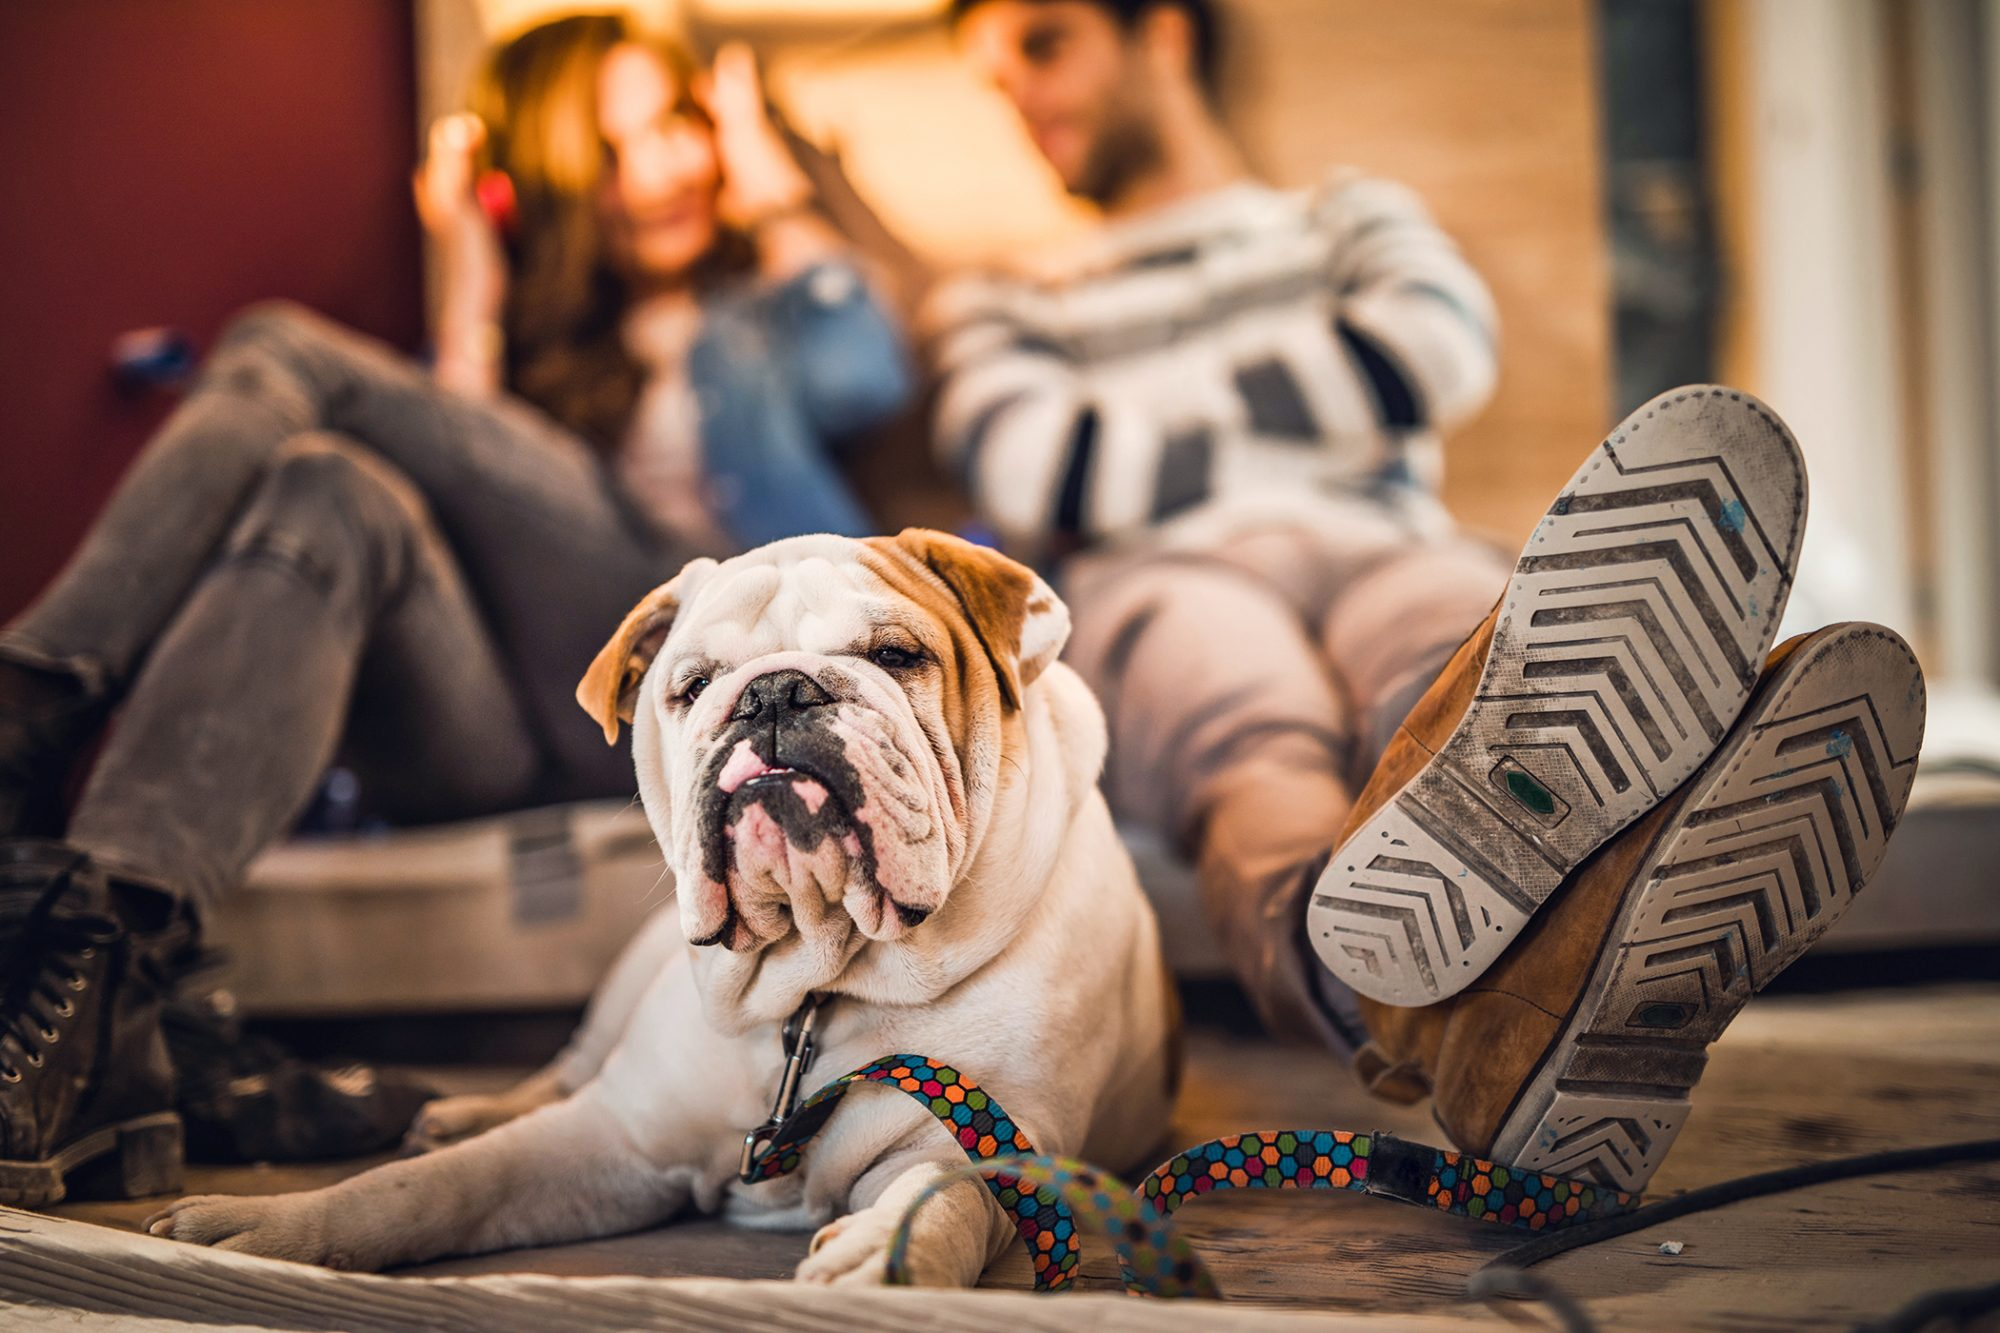 bulldog with liver failure sitting on the floor next to his owners